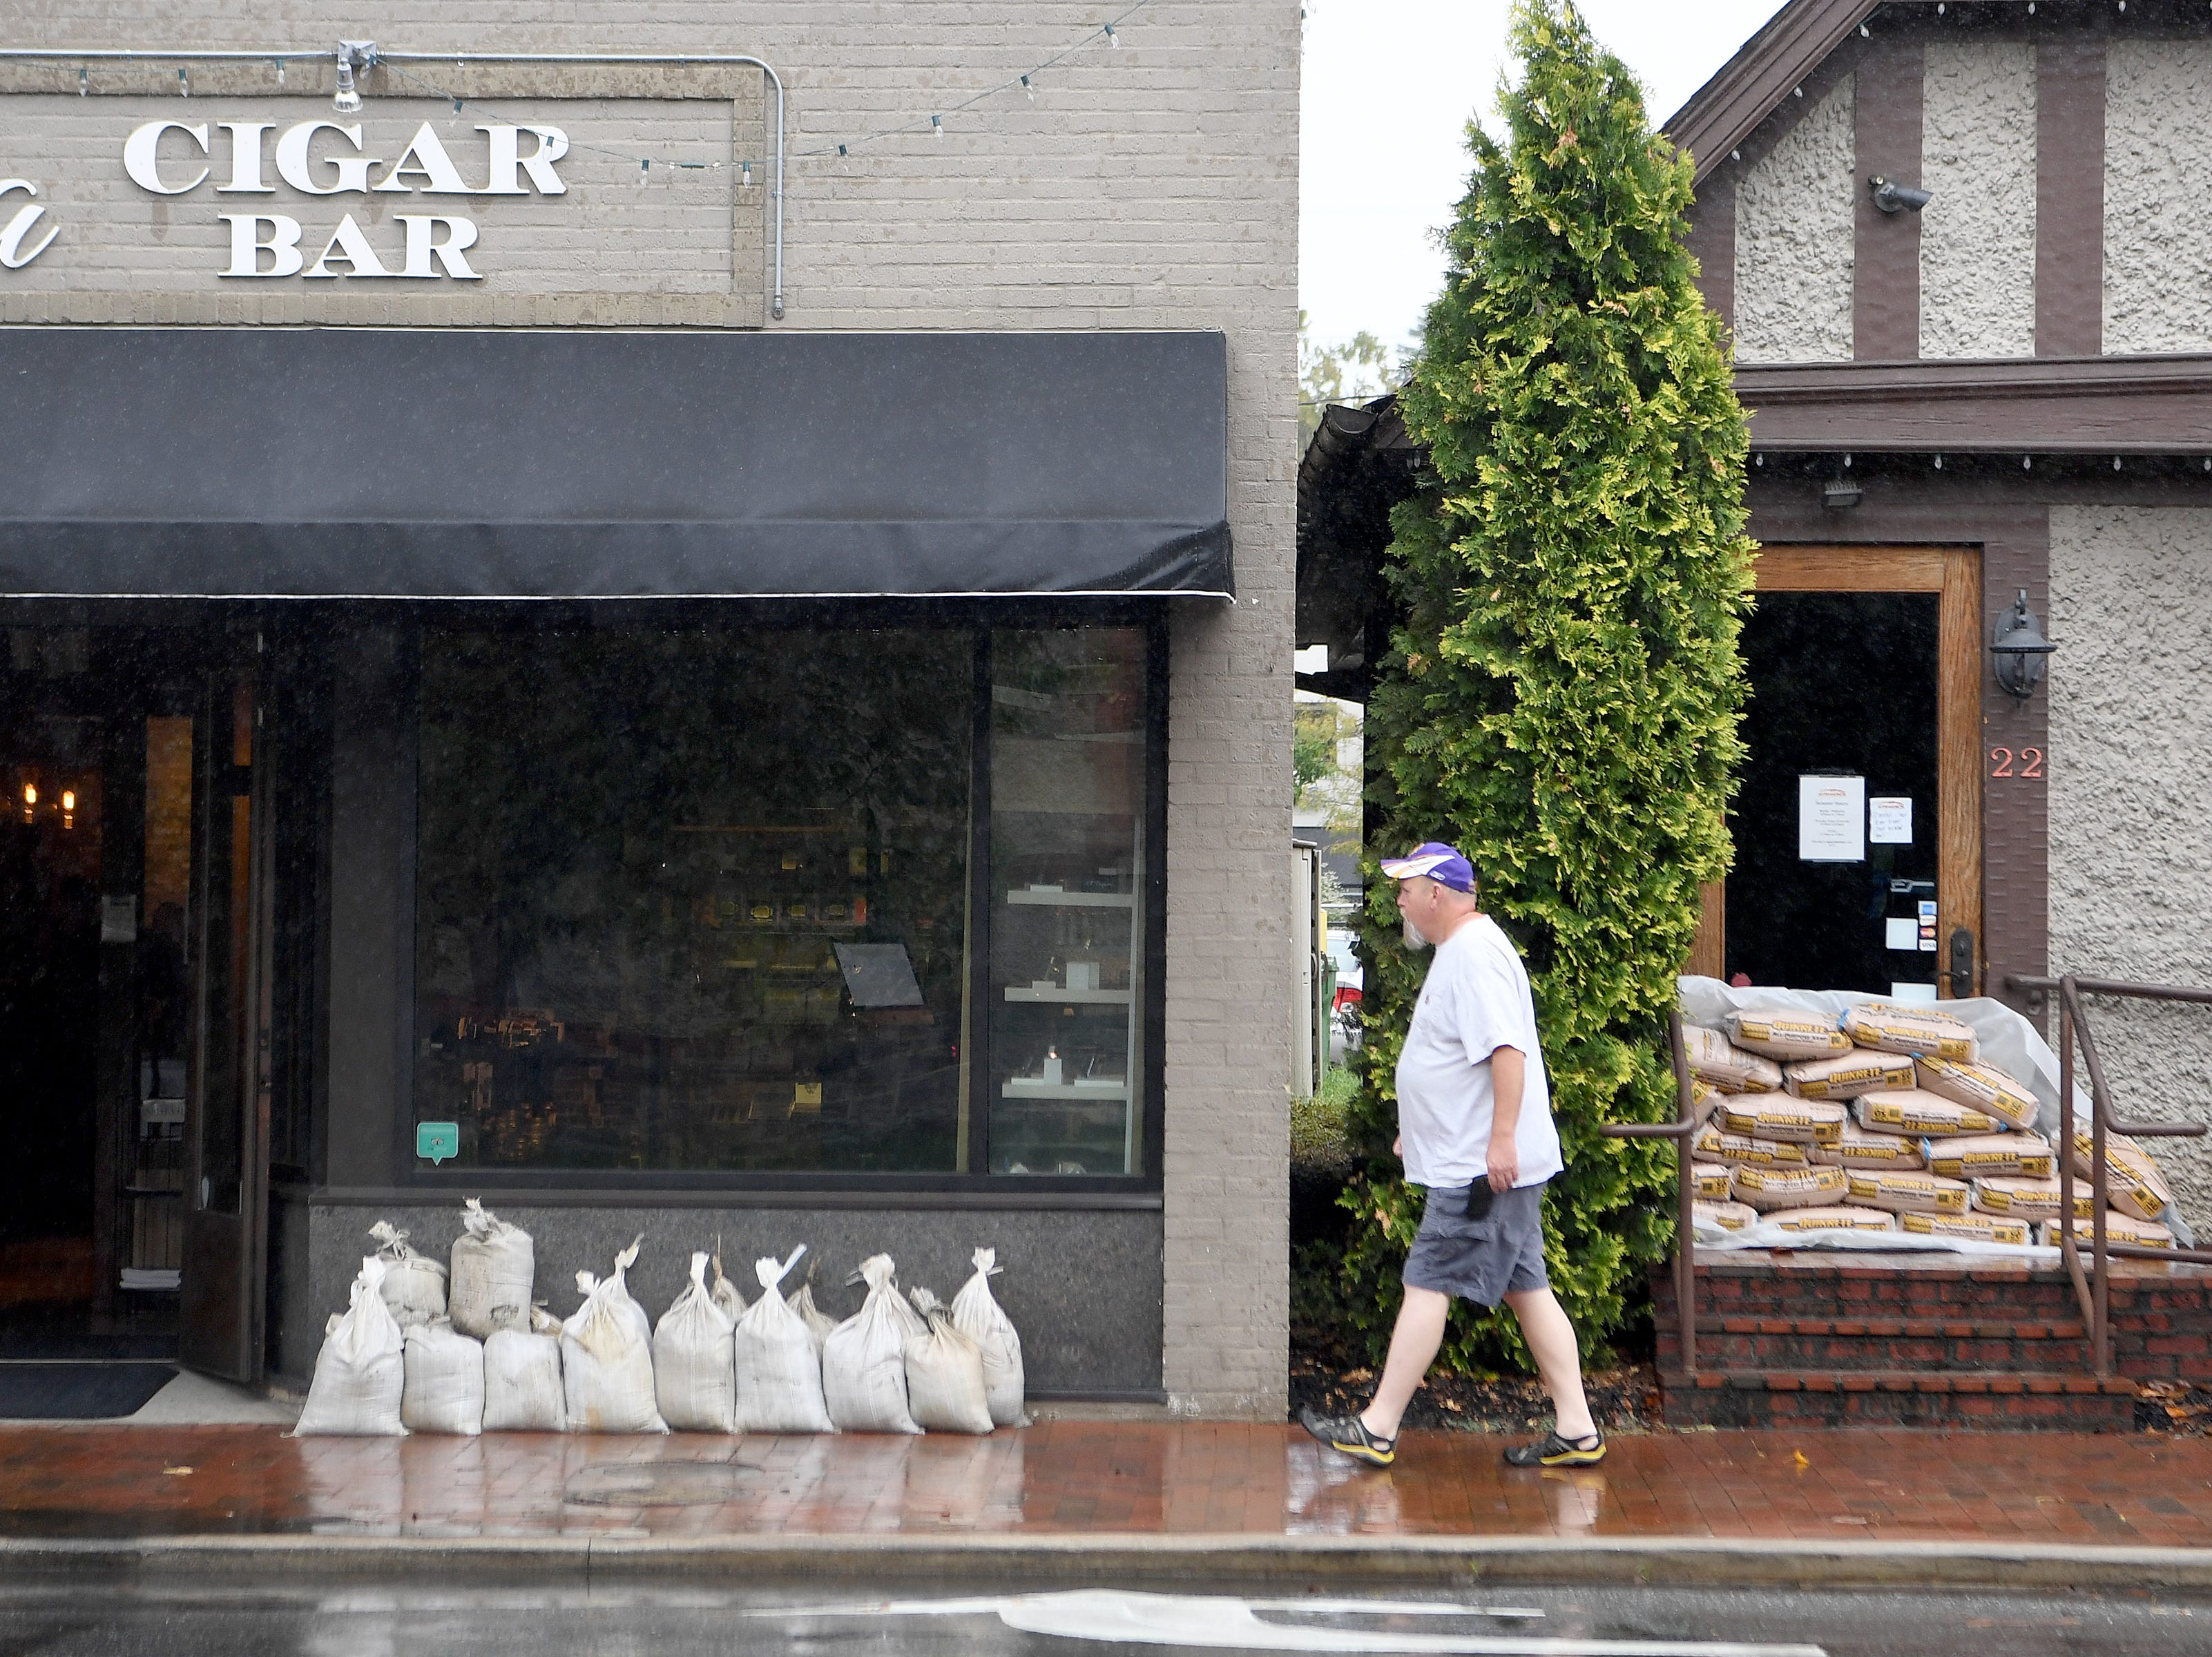 Business owners in Biltmore Village are prepared with sandbags in the event of flooding caused by Hurricane Florence, now downgraded to a tropical depression, on Sept. 16, 2018. Sunday was still business as usual in the area.